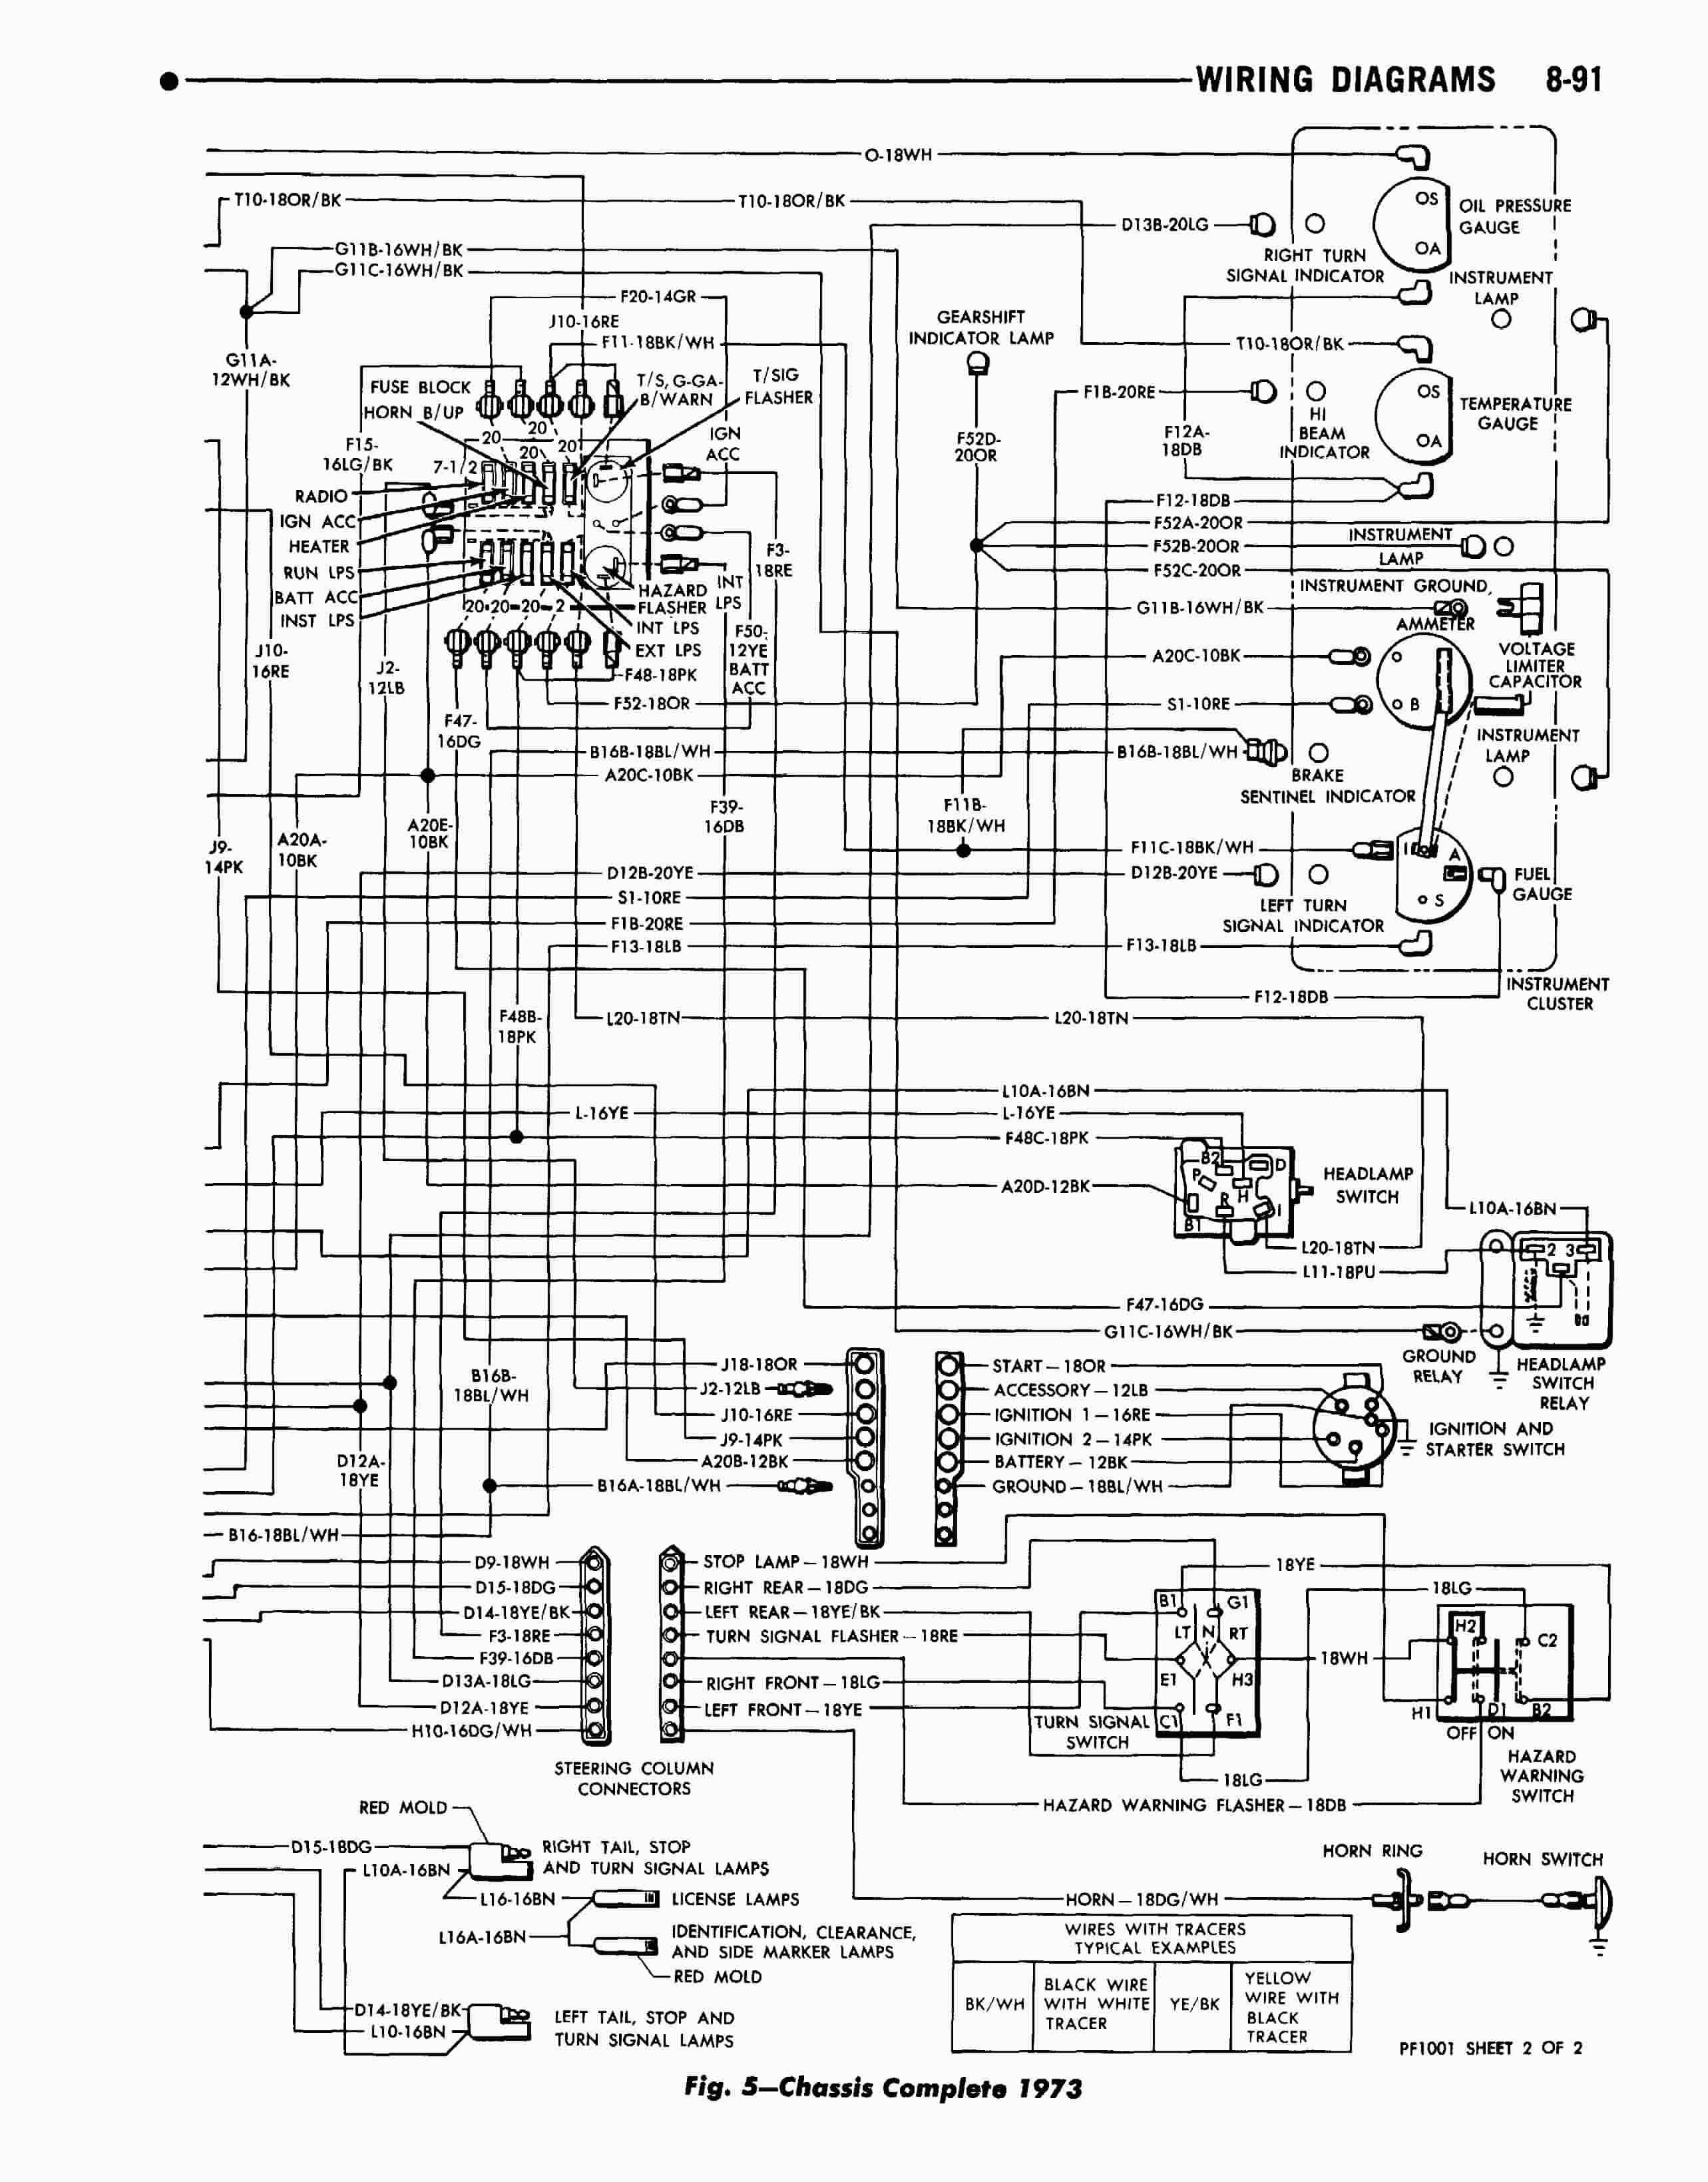 Wiring Diagrams Ford F53 Blinker Diagram Libraries Porsche 914 Engine Dolly Scematic2009 Todays